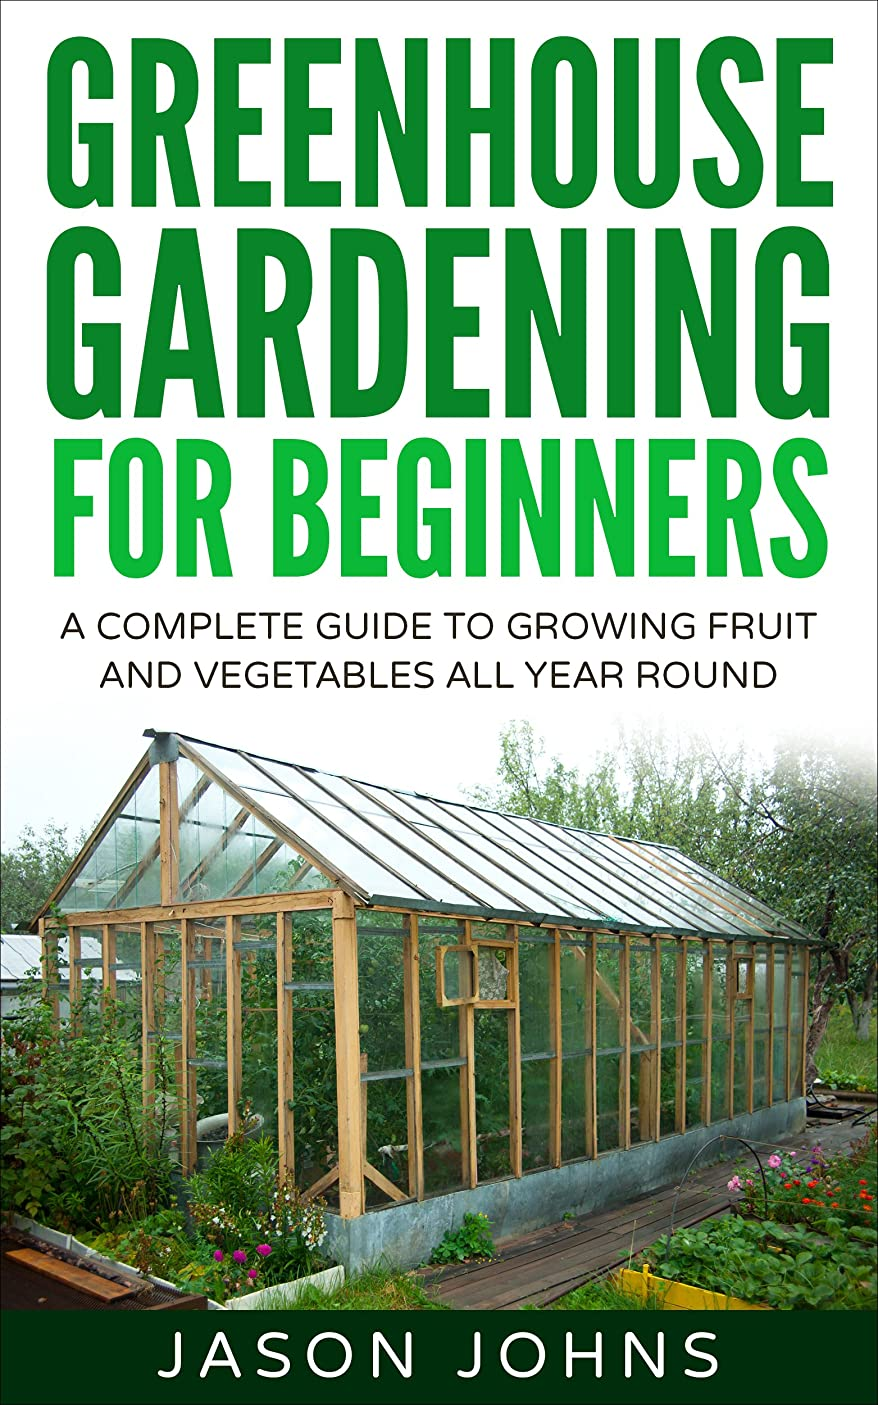 Greenhouse Gardening   A Beginners Guide To Growing Fruit and Vegetables All Year Round: Everything You Need To Know About Owning A Greenhouse (Inspiring Gardening Ideas Book 18) (English Edition)